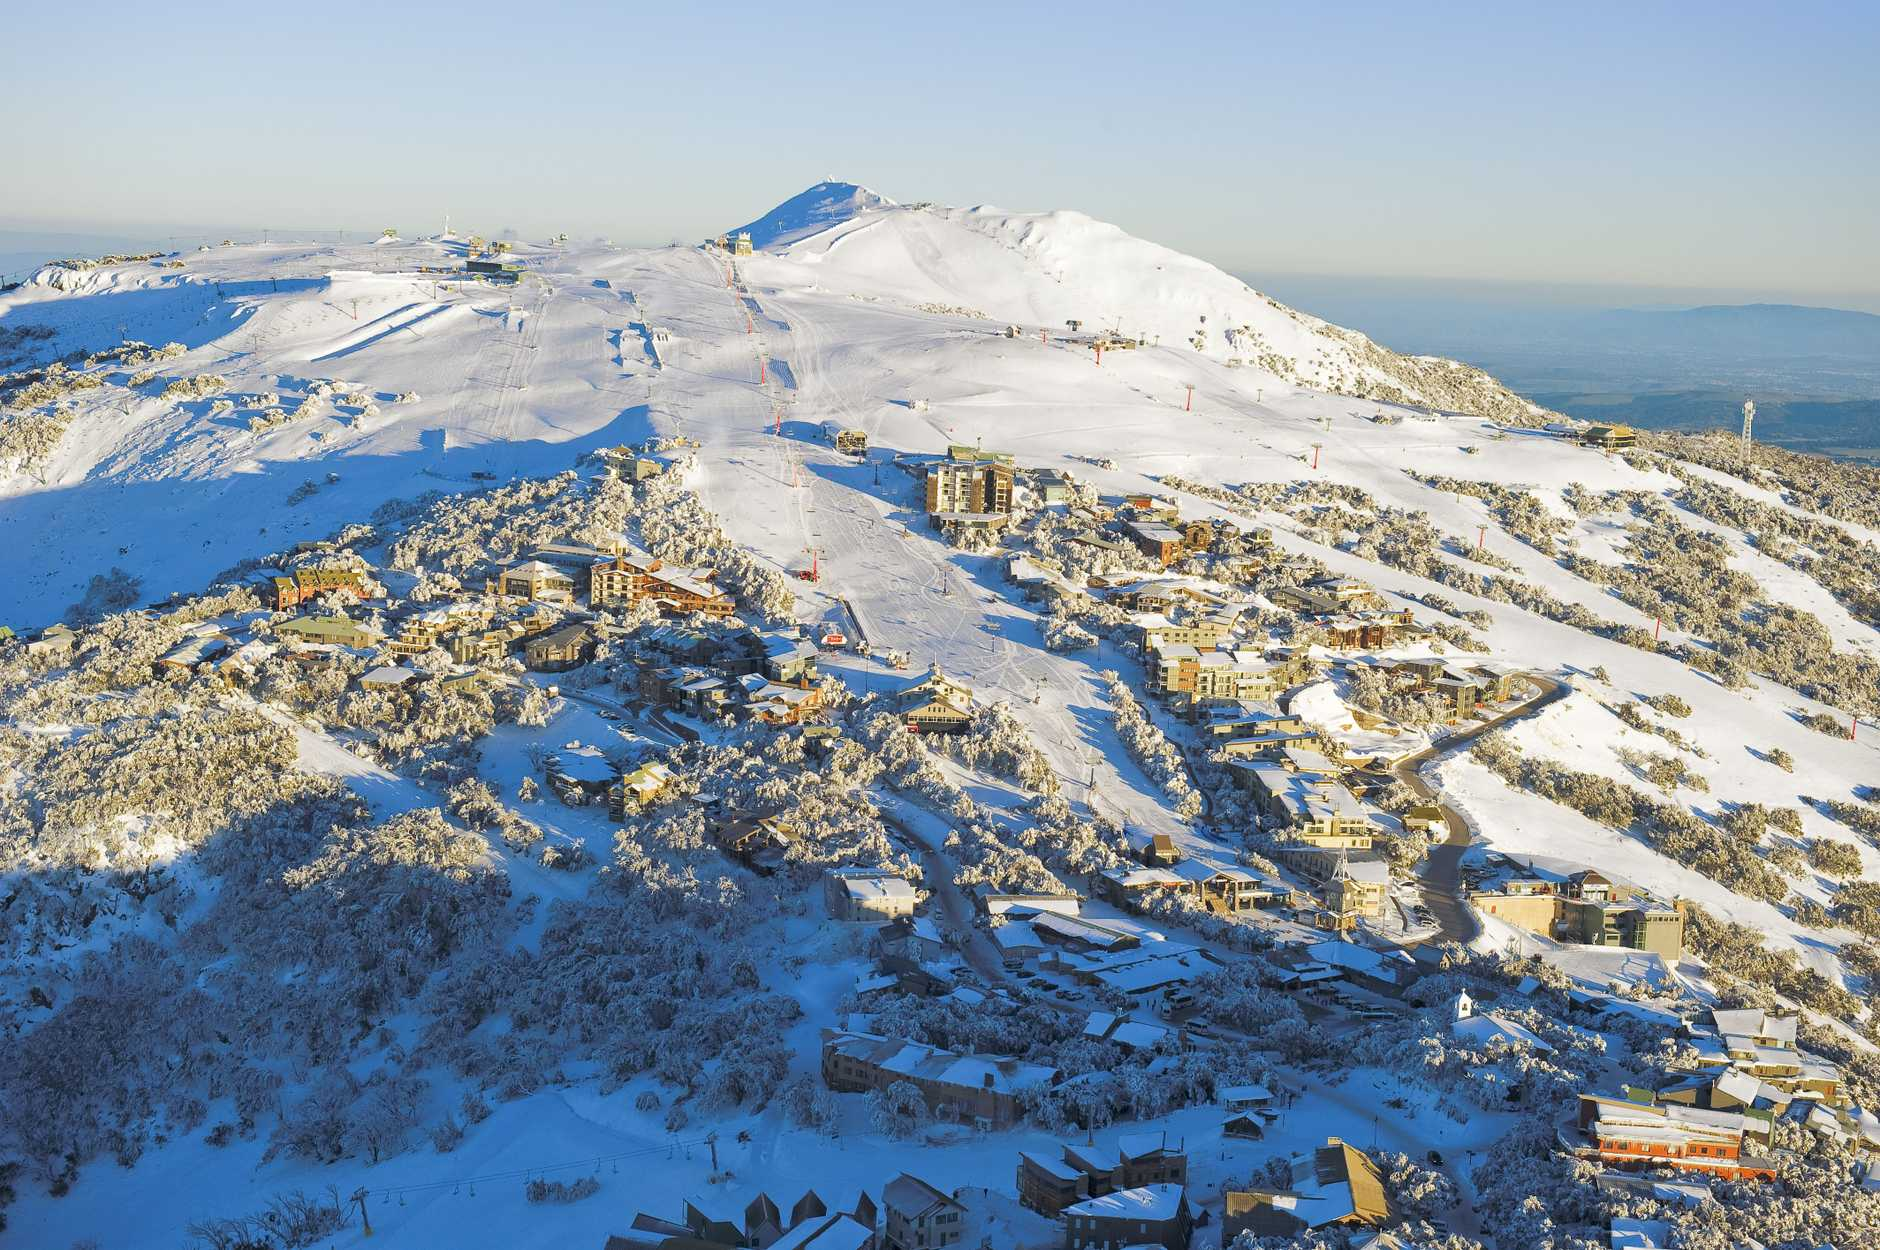 A skiers dream: A beautiful day on Mount Buller. Credit: Andrew Railton.